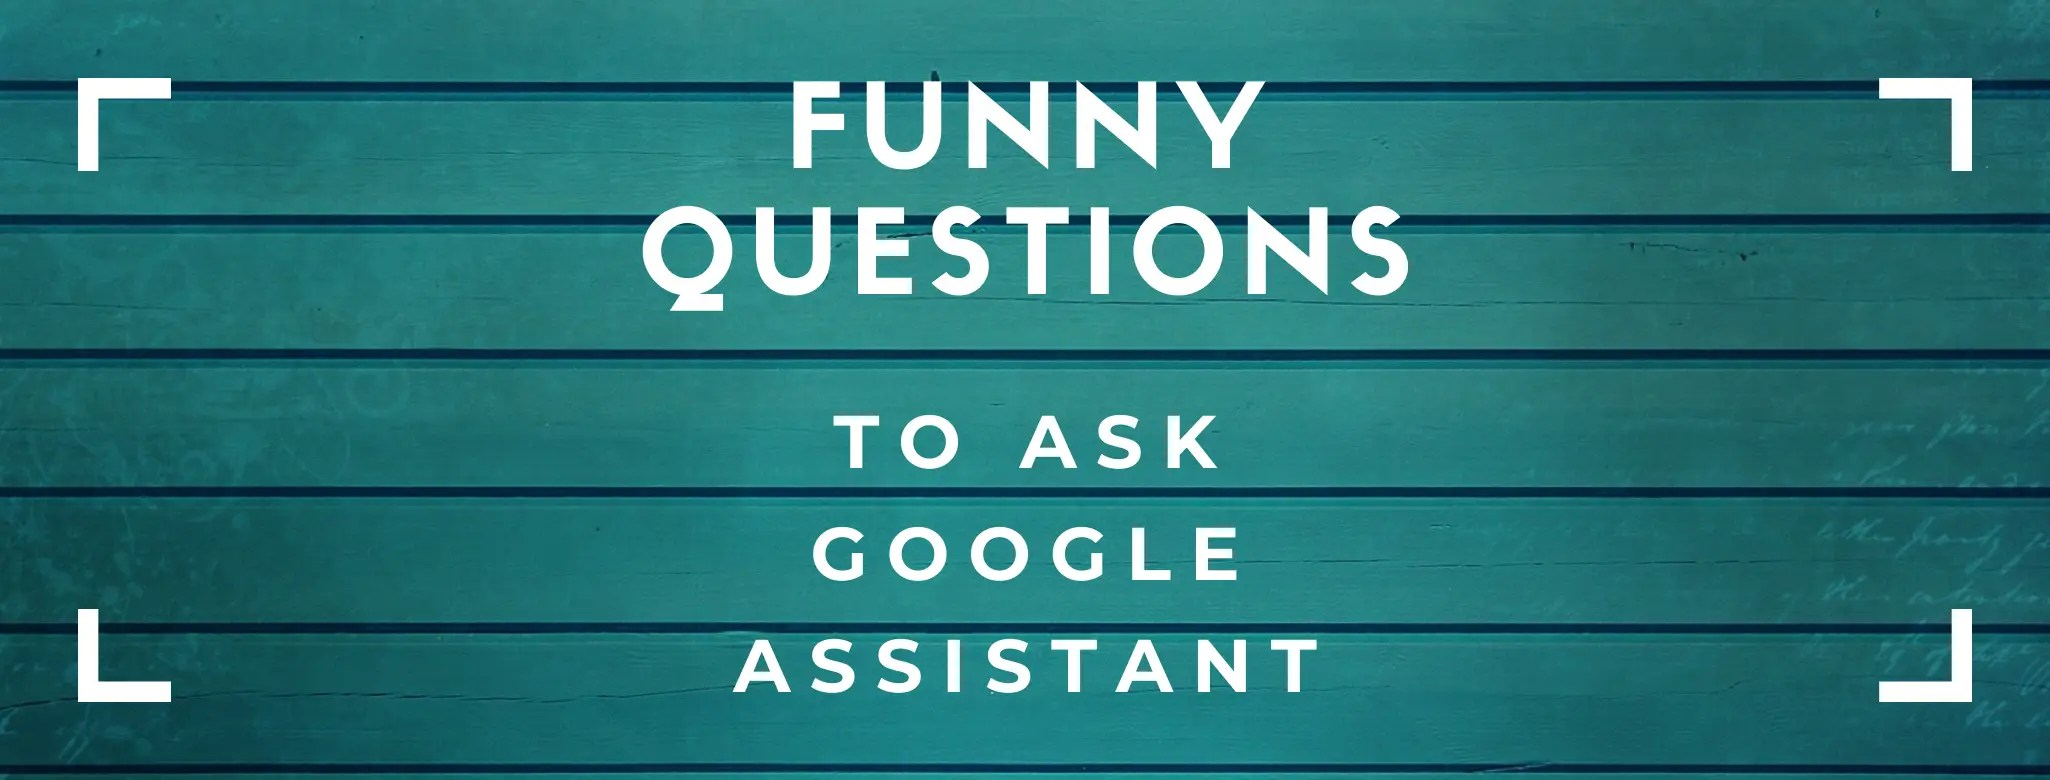 Funny questions to ask Google Assistant